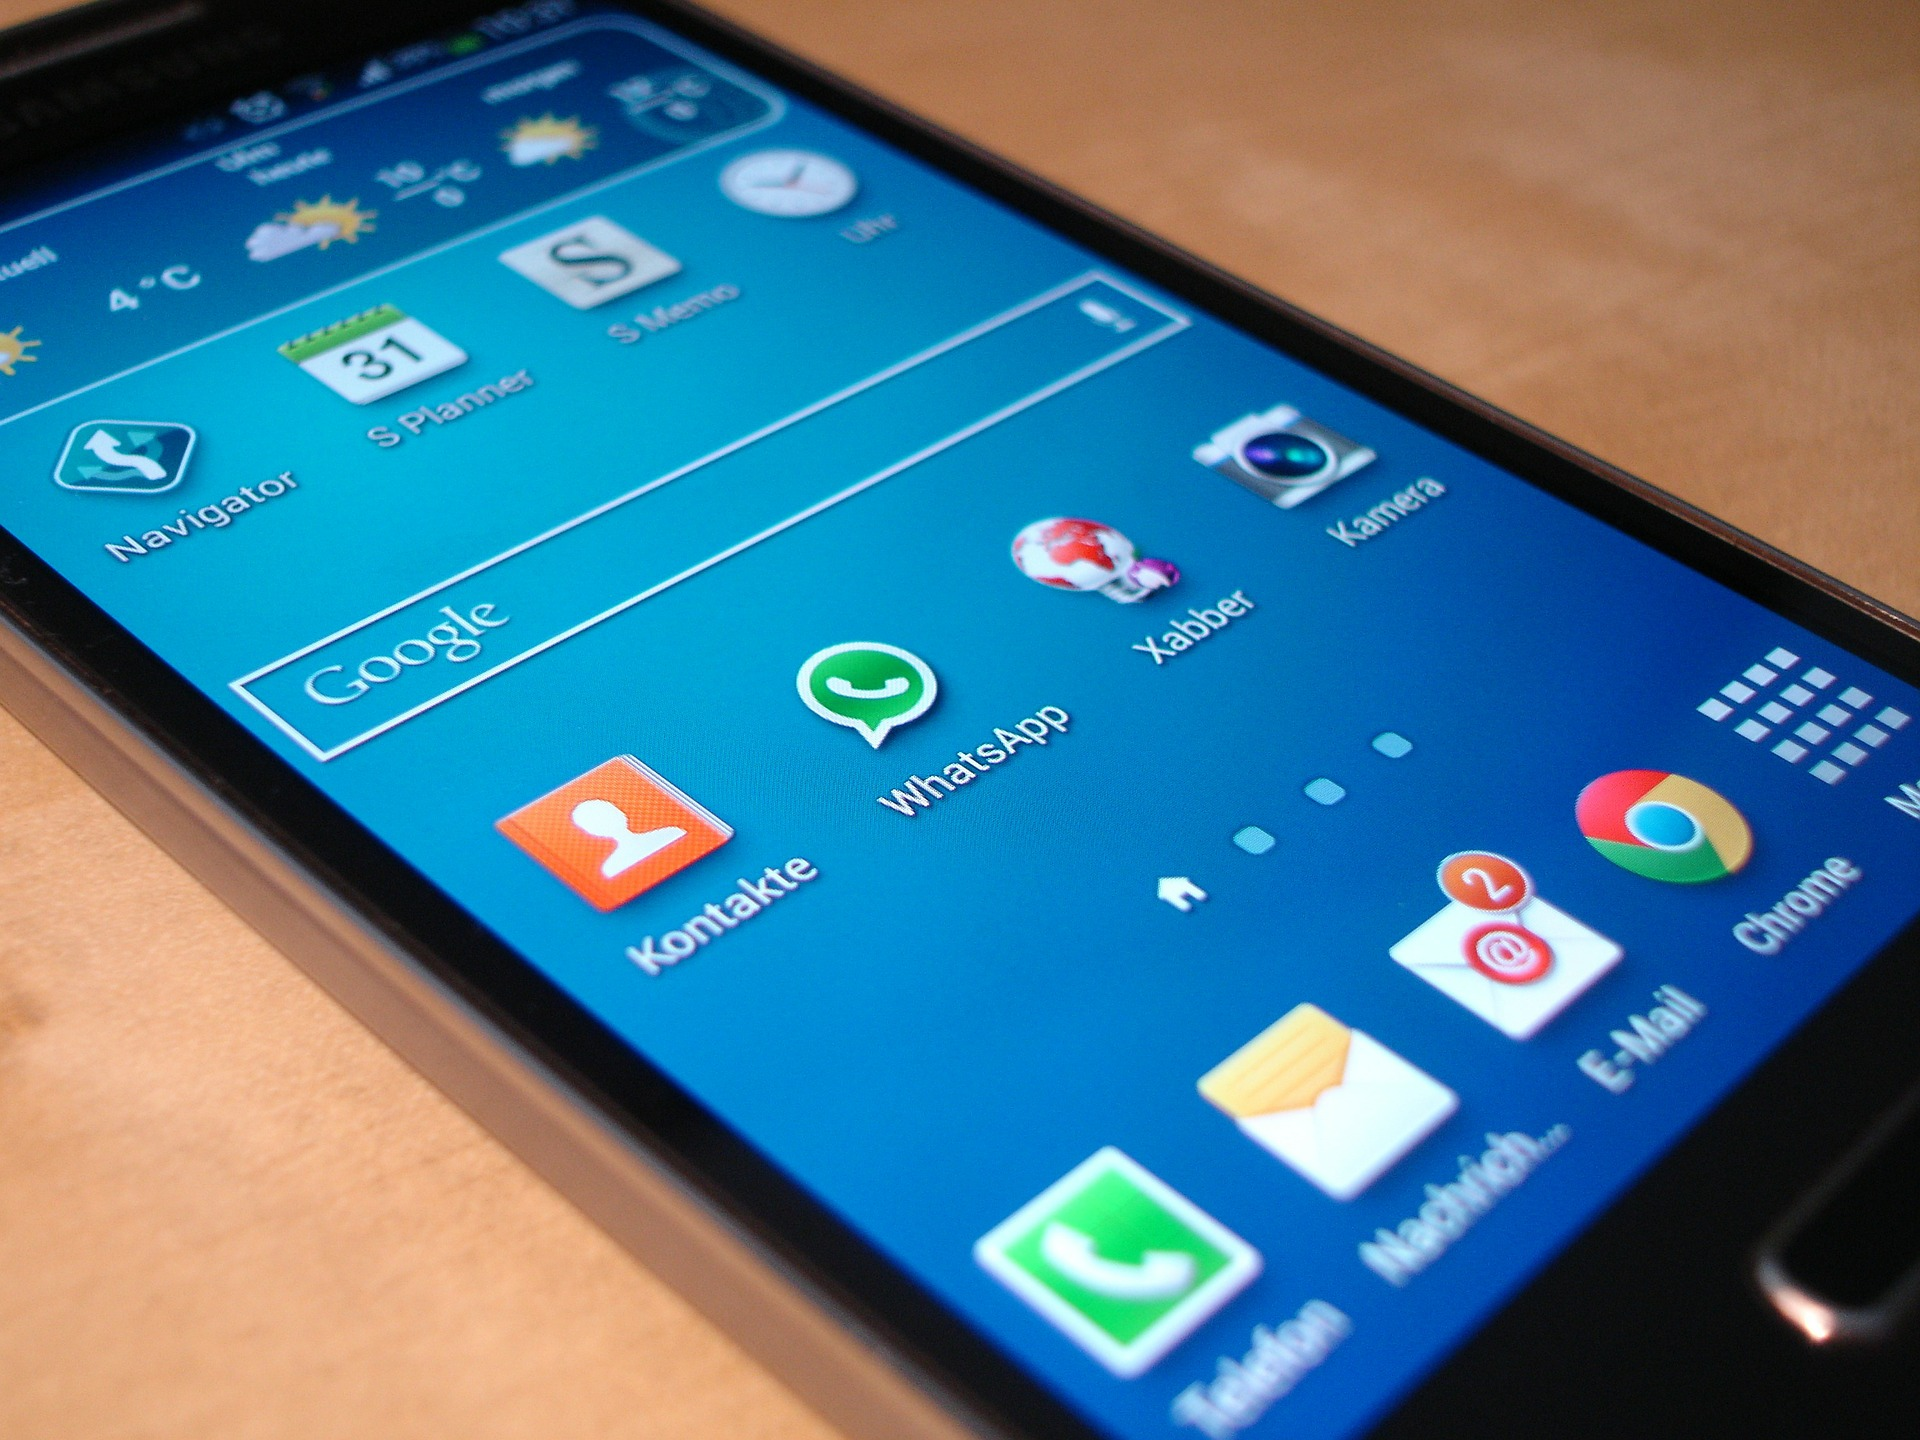 Samsung doubles down on mobile support.